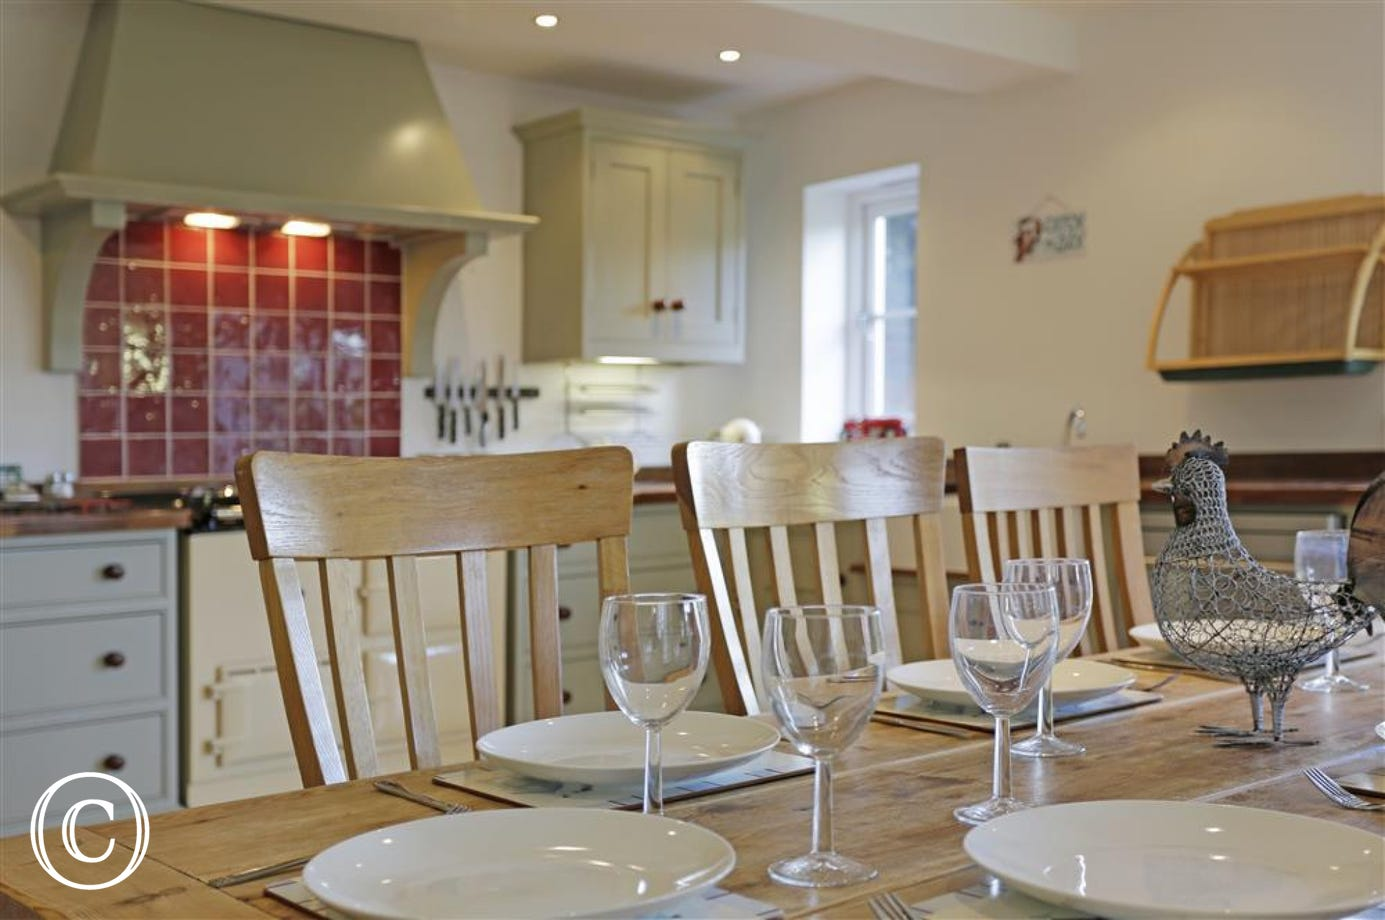 This spacious room is ideal for gathering your family together to enjoy meal times. The large cooker can guarantee to provide facilities for a feast.